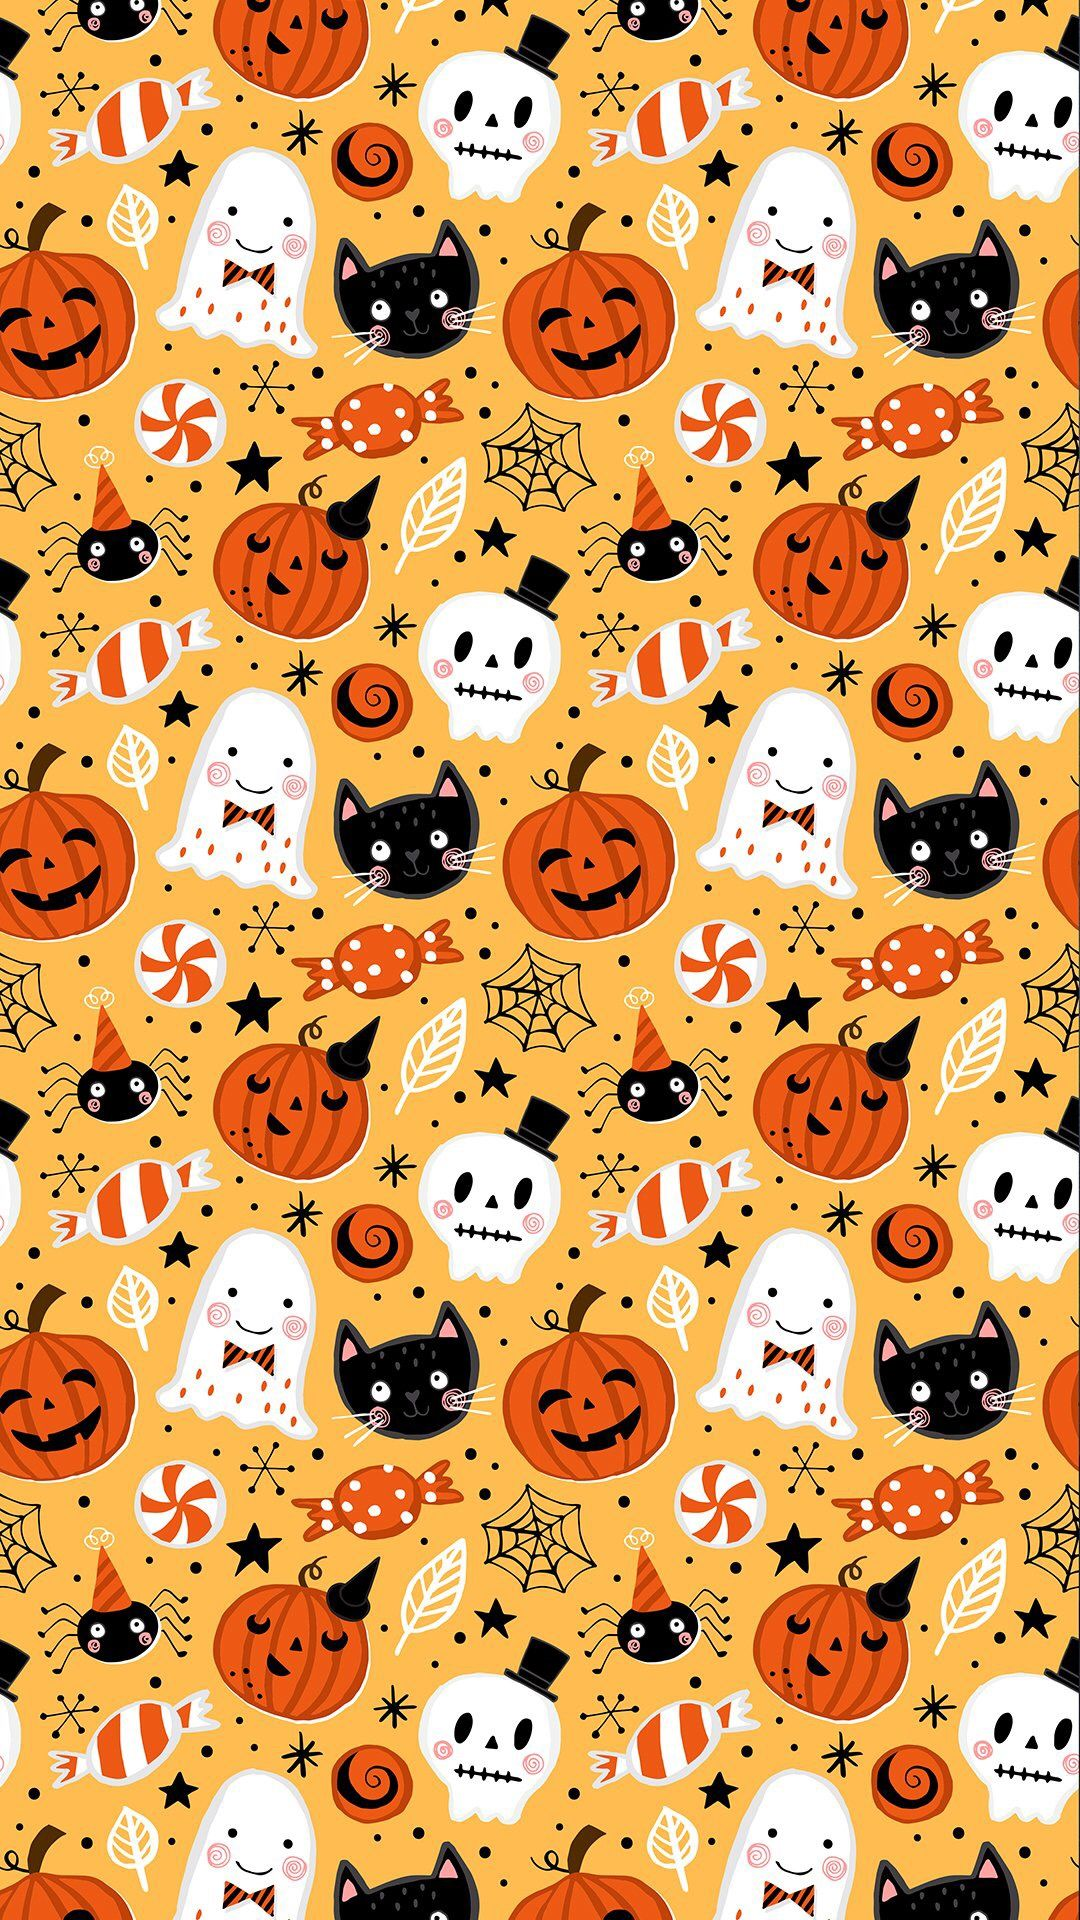 Halloween Background Halloween Wallpaper Halloween Wallpaper Iphone Halloween Wallpaper Cute